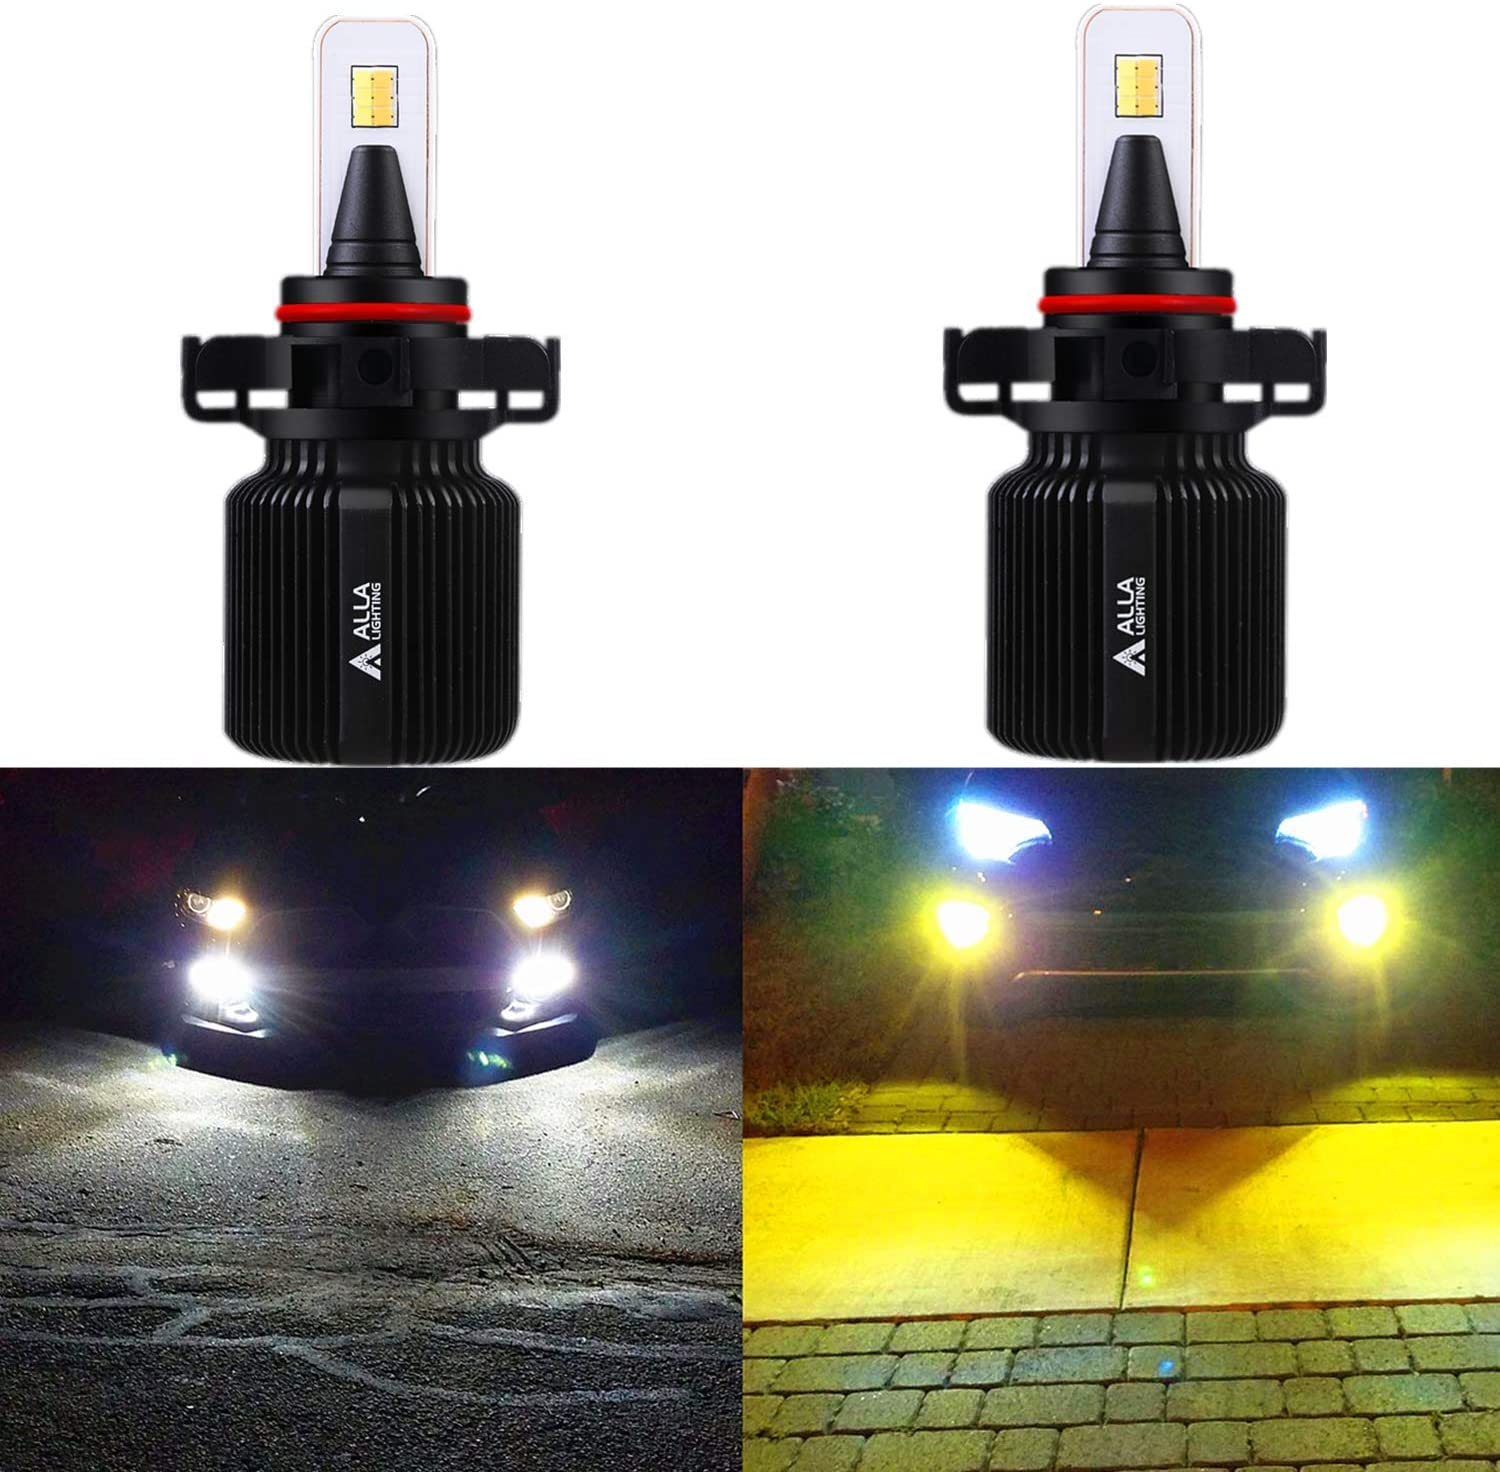 ALLA Lighting 8000Lm 2504 PSX24W LED Bulbs Dual Color Switchback Fog Lights 6000K White / 3000K Amber Yellow PSX24W 2504 LED Fog Lights Bulbs Lamp Replacement for Cars, Trucks (Set of 2)